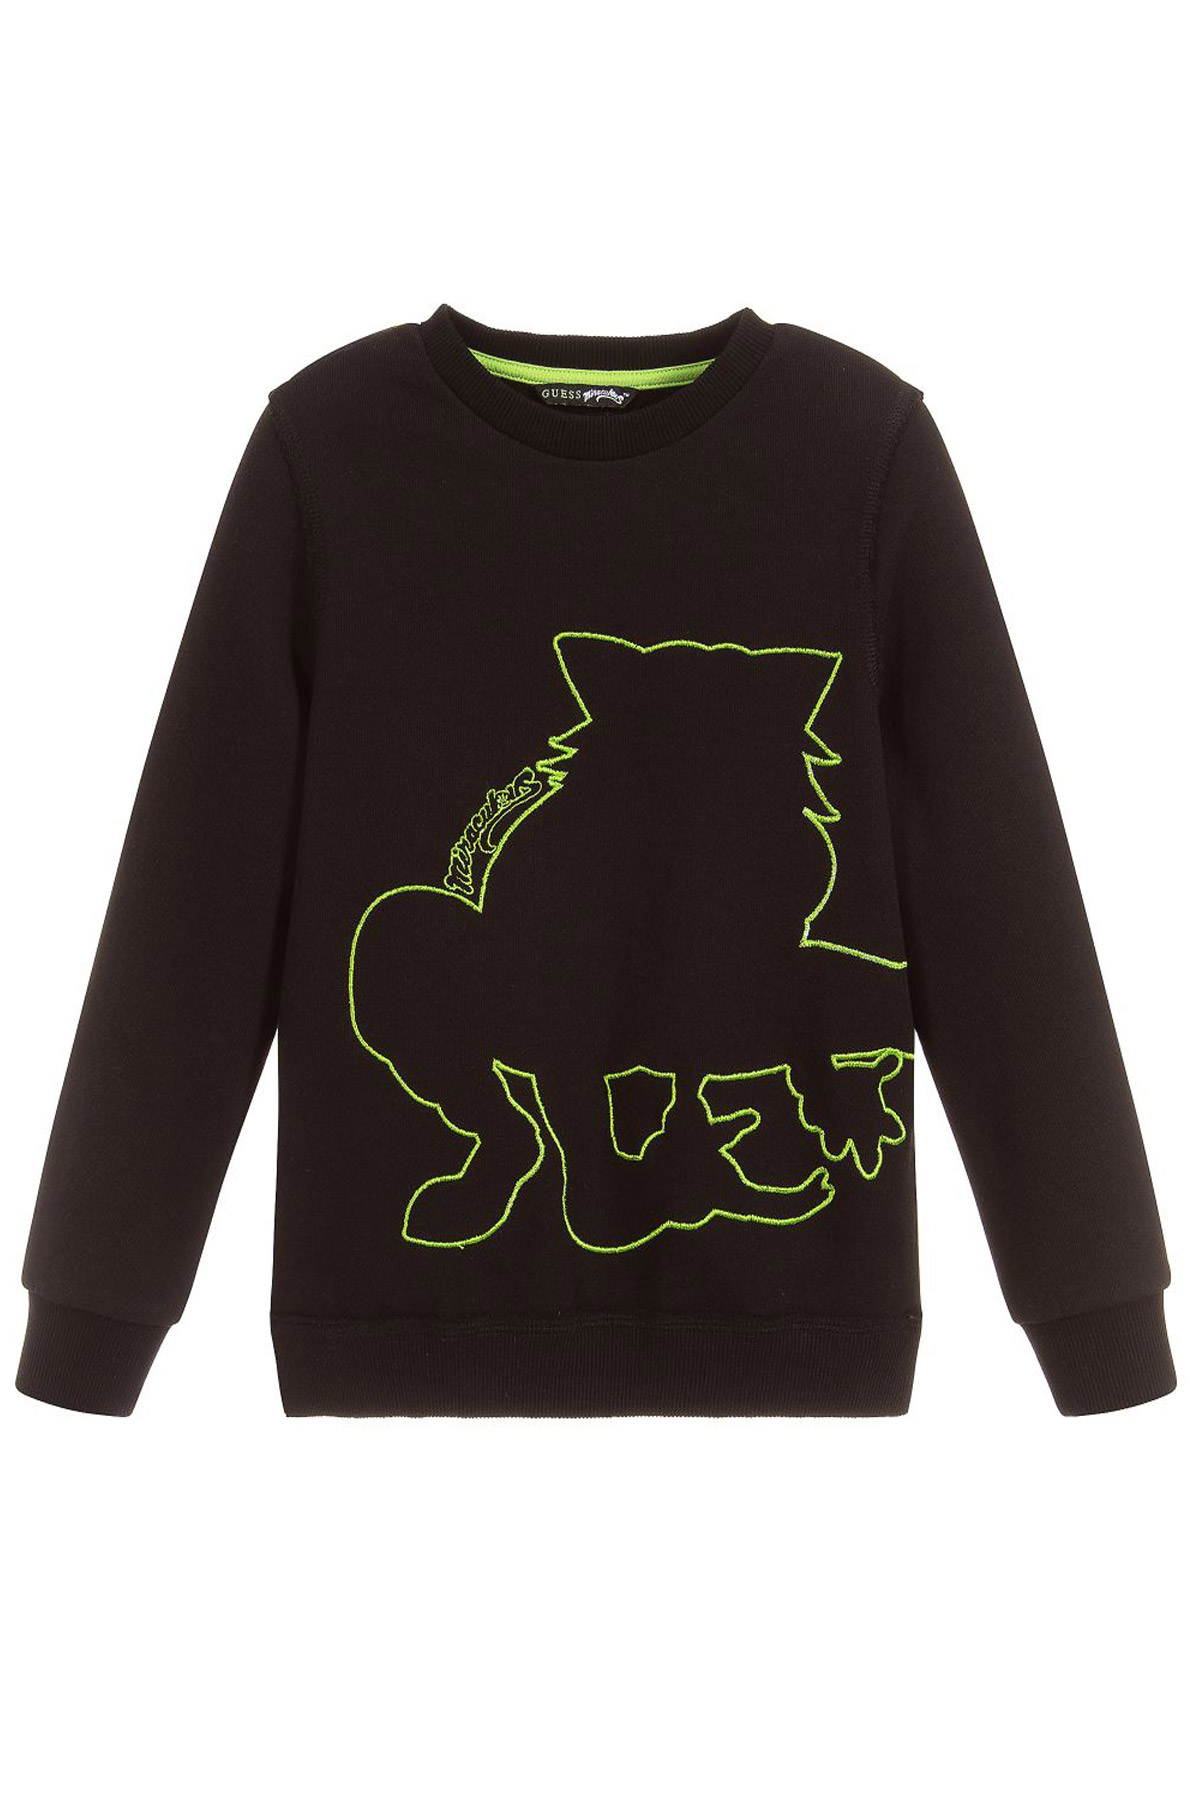 0e5f8f1ad794 BRAND: GUESS CATEGORIES: CLOTHING, Sweatshirt COLOR: nero